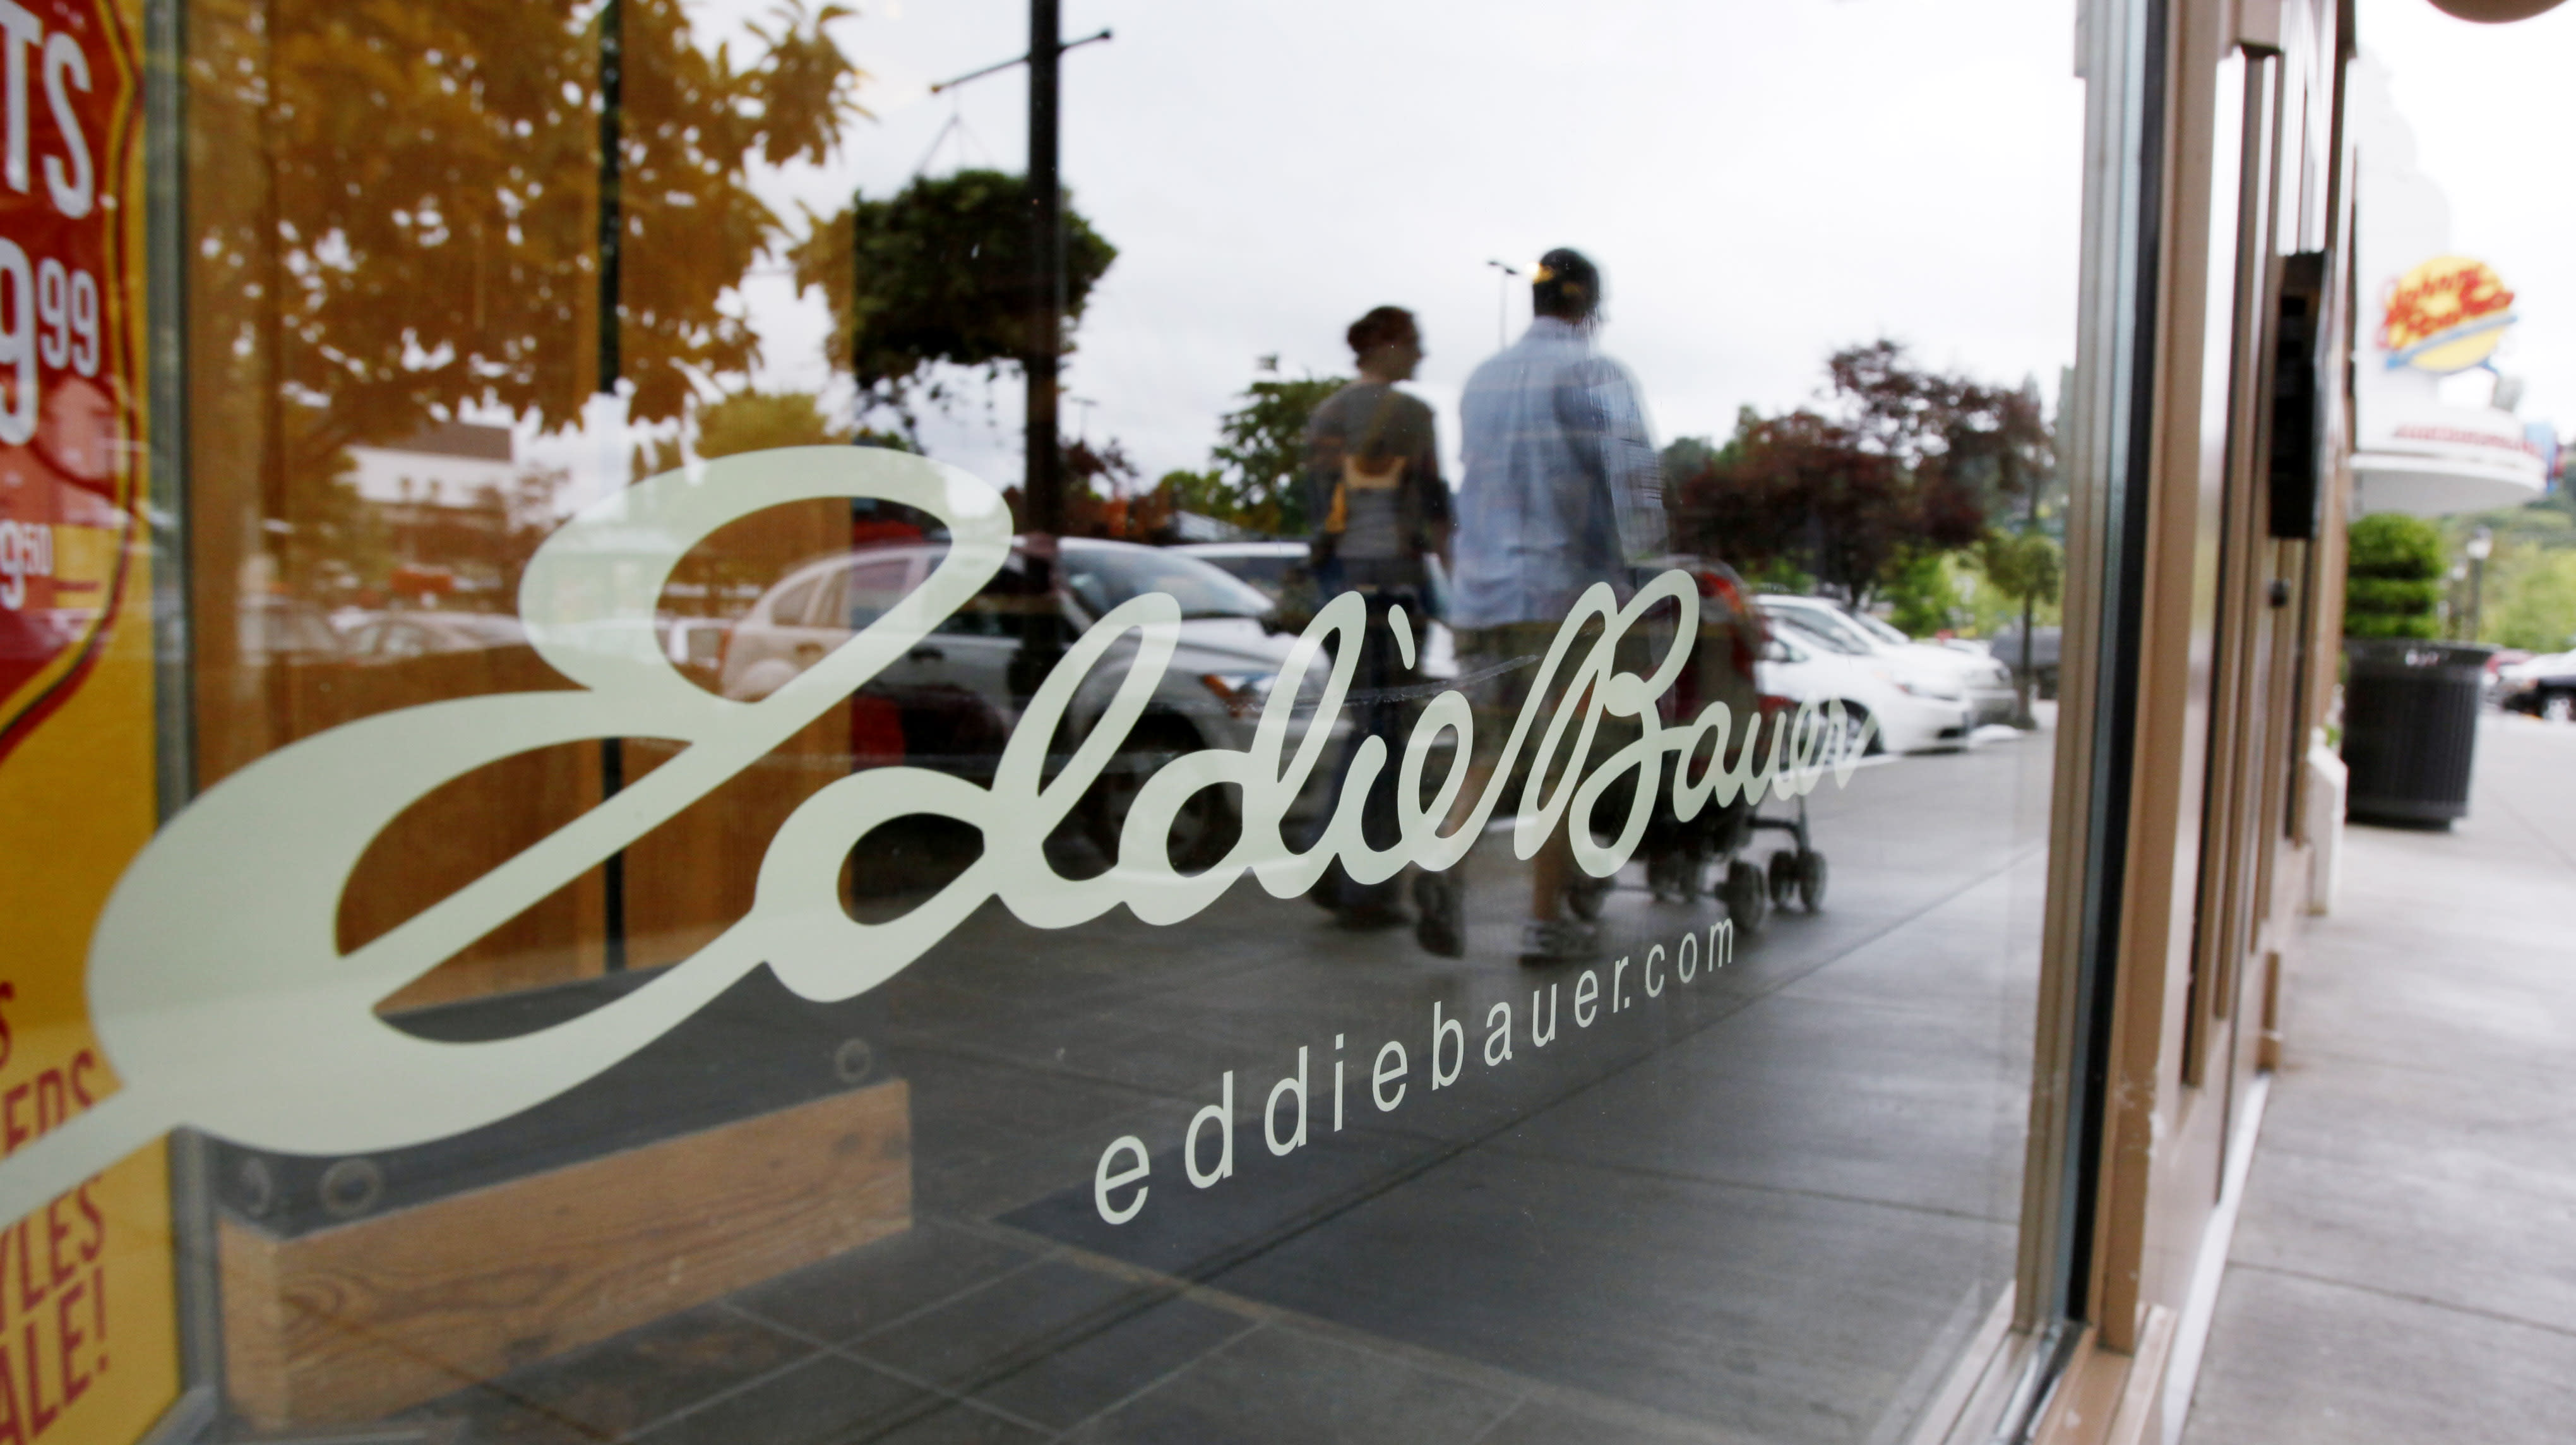 eddie bauer inc hbs Learn about working at eddie bauer join linkedin today for free see who you know at eddie bauer, leverage your professional network, and get hired.